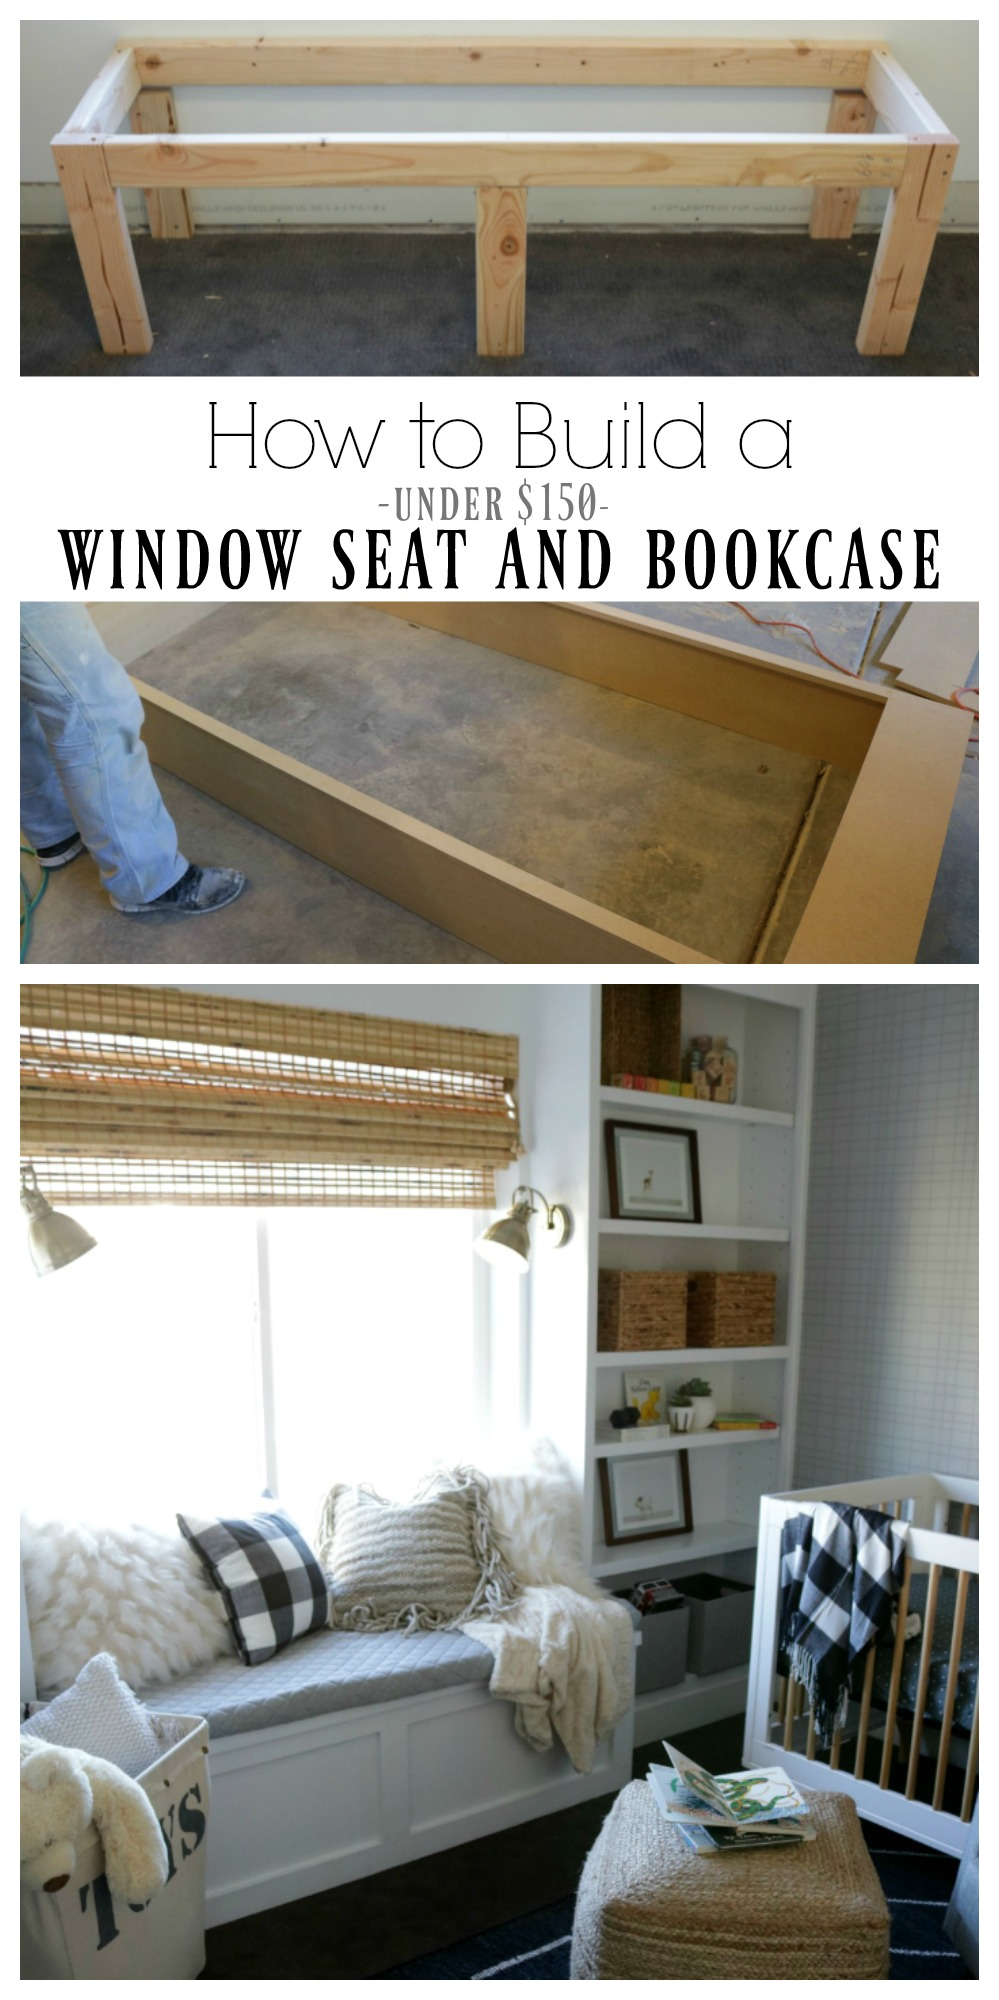 How to Build a Window Seat and Bookcase under $150